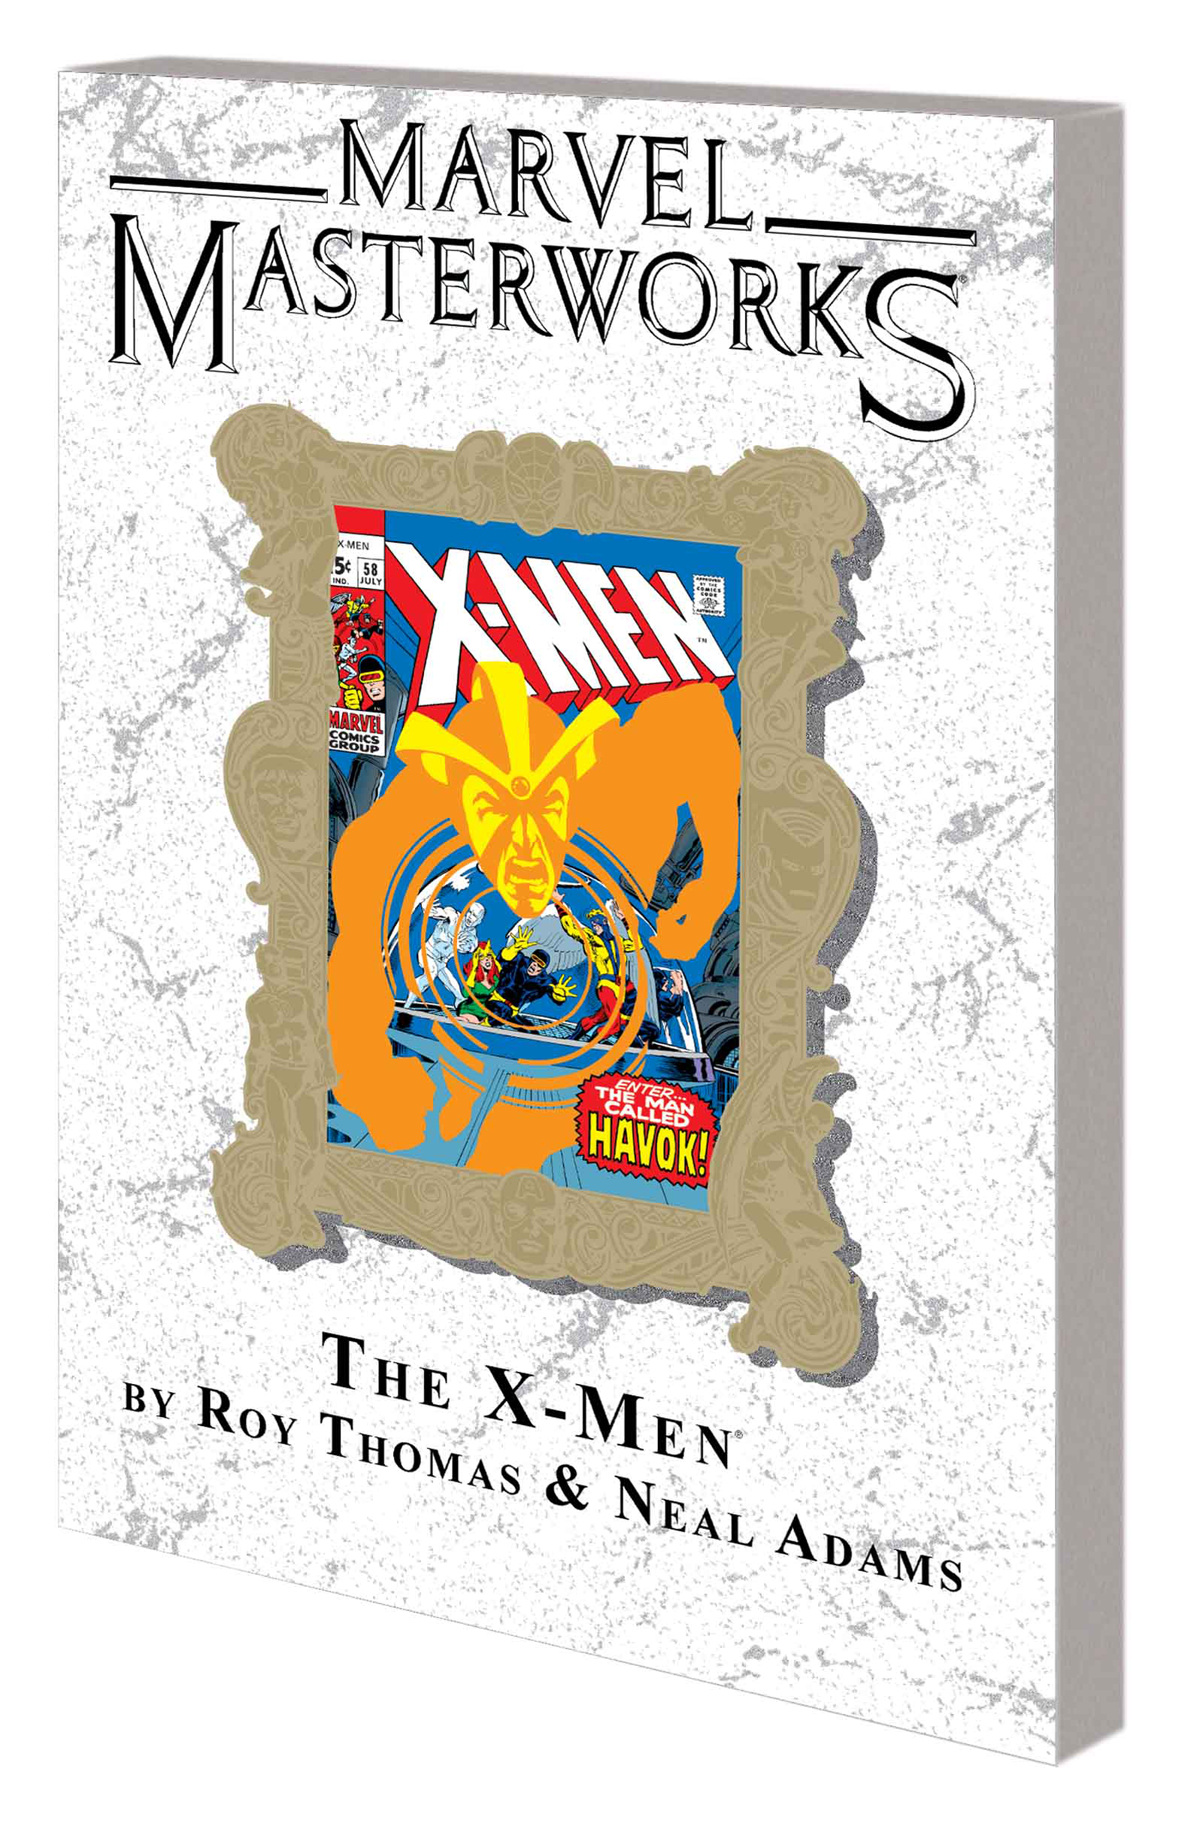 MMW X-MEN TP VOL 06 DM VAR ED 61